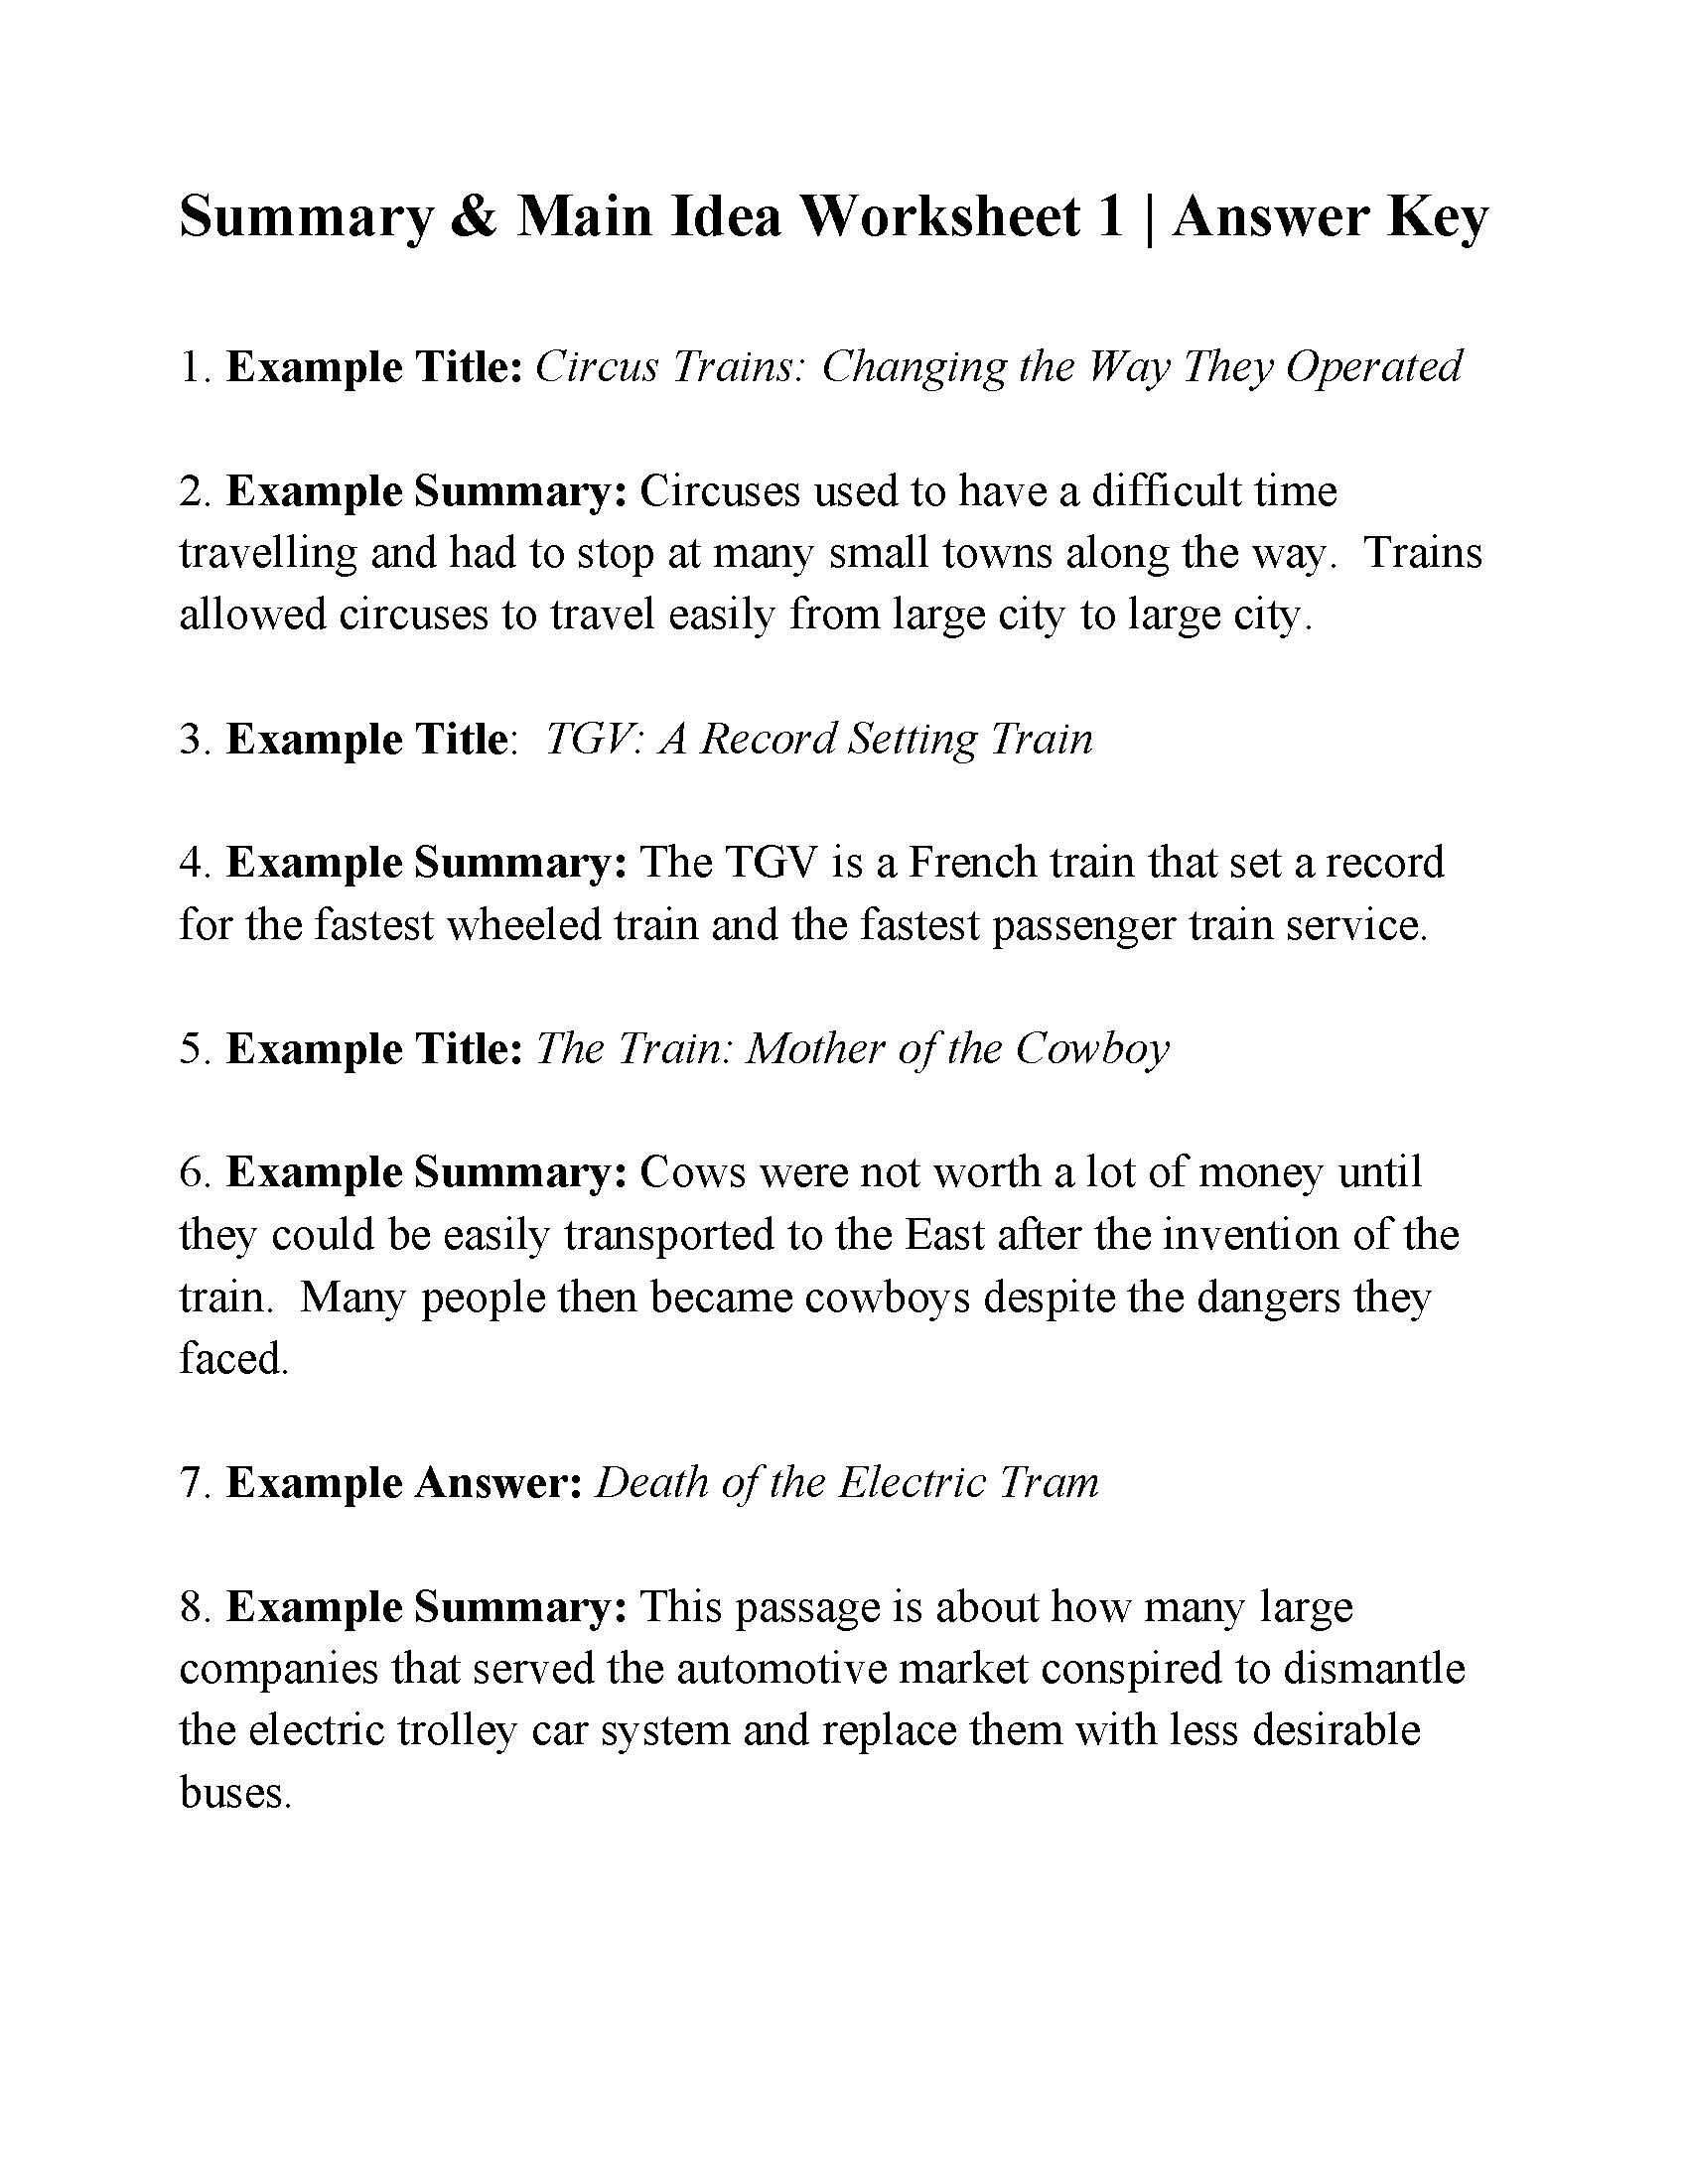 8th Grade Main Idea Worksheets This is the Answer Key for the Summary and Main Idea